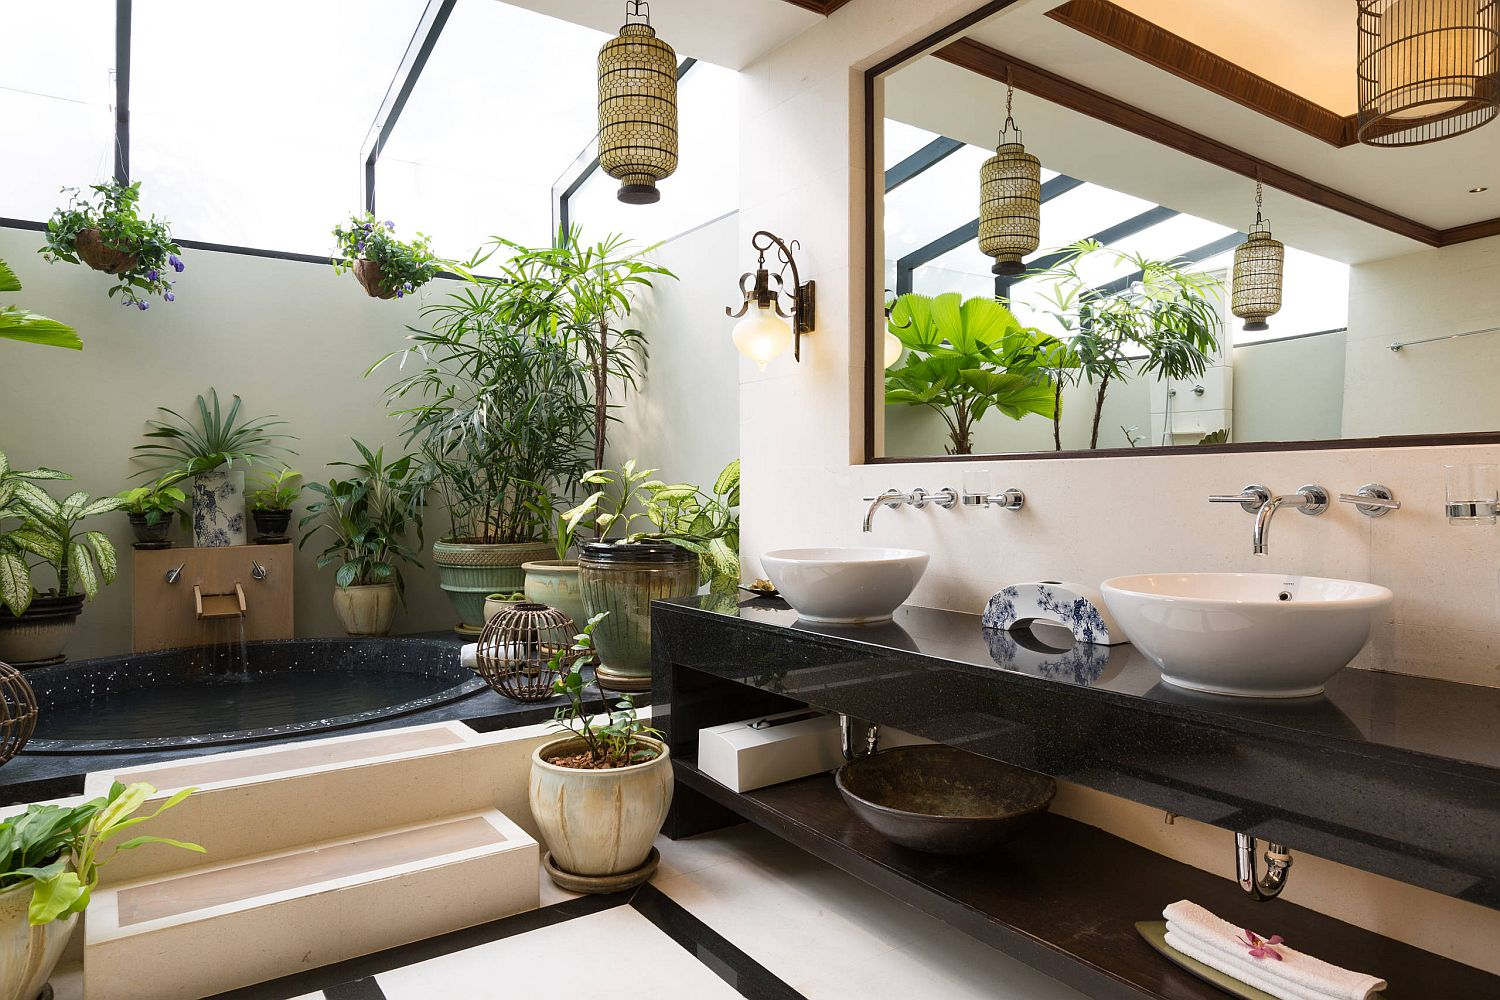 Greenery, skylights and wood give the bathroom a stunning and relaxing vibe